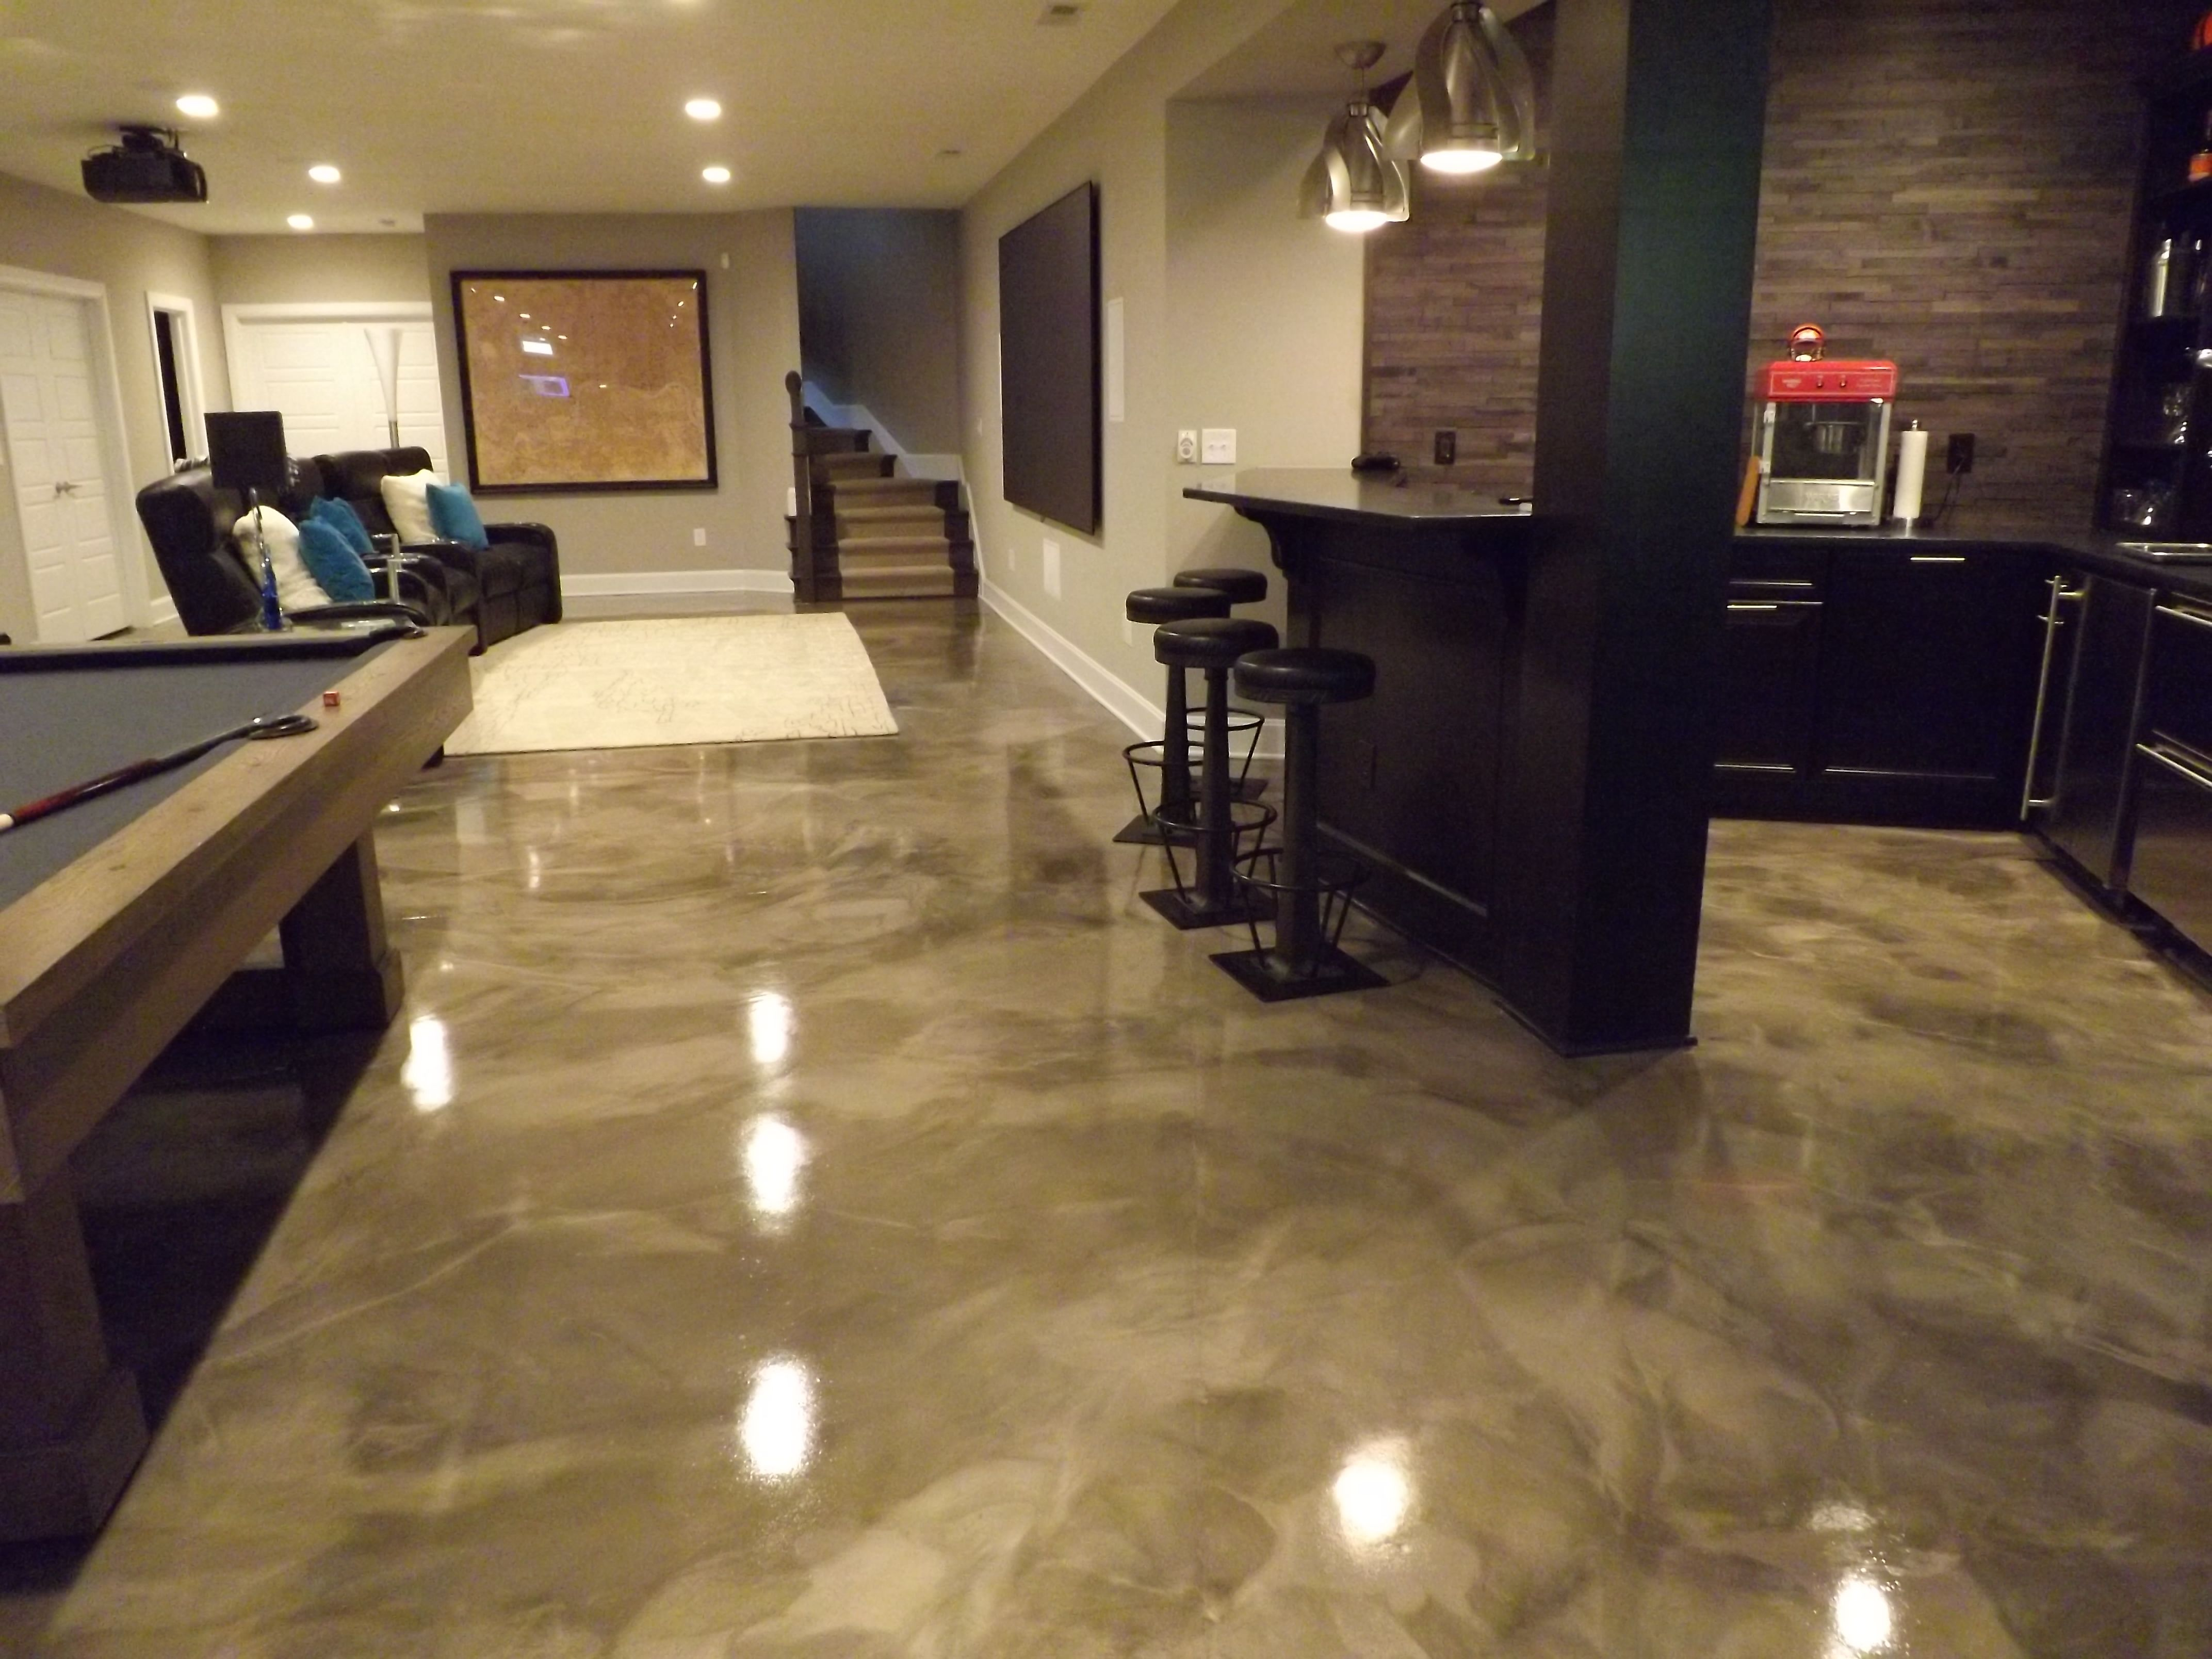 astonishing floor best approved in paint pros of rubber restaurant full commercial flooring expensive is floors size fda kitchen and tile homes epoxy cons